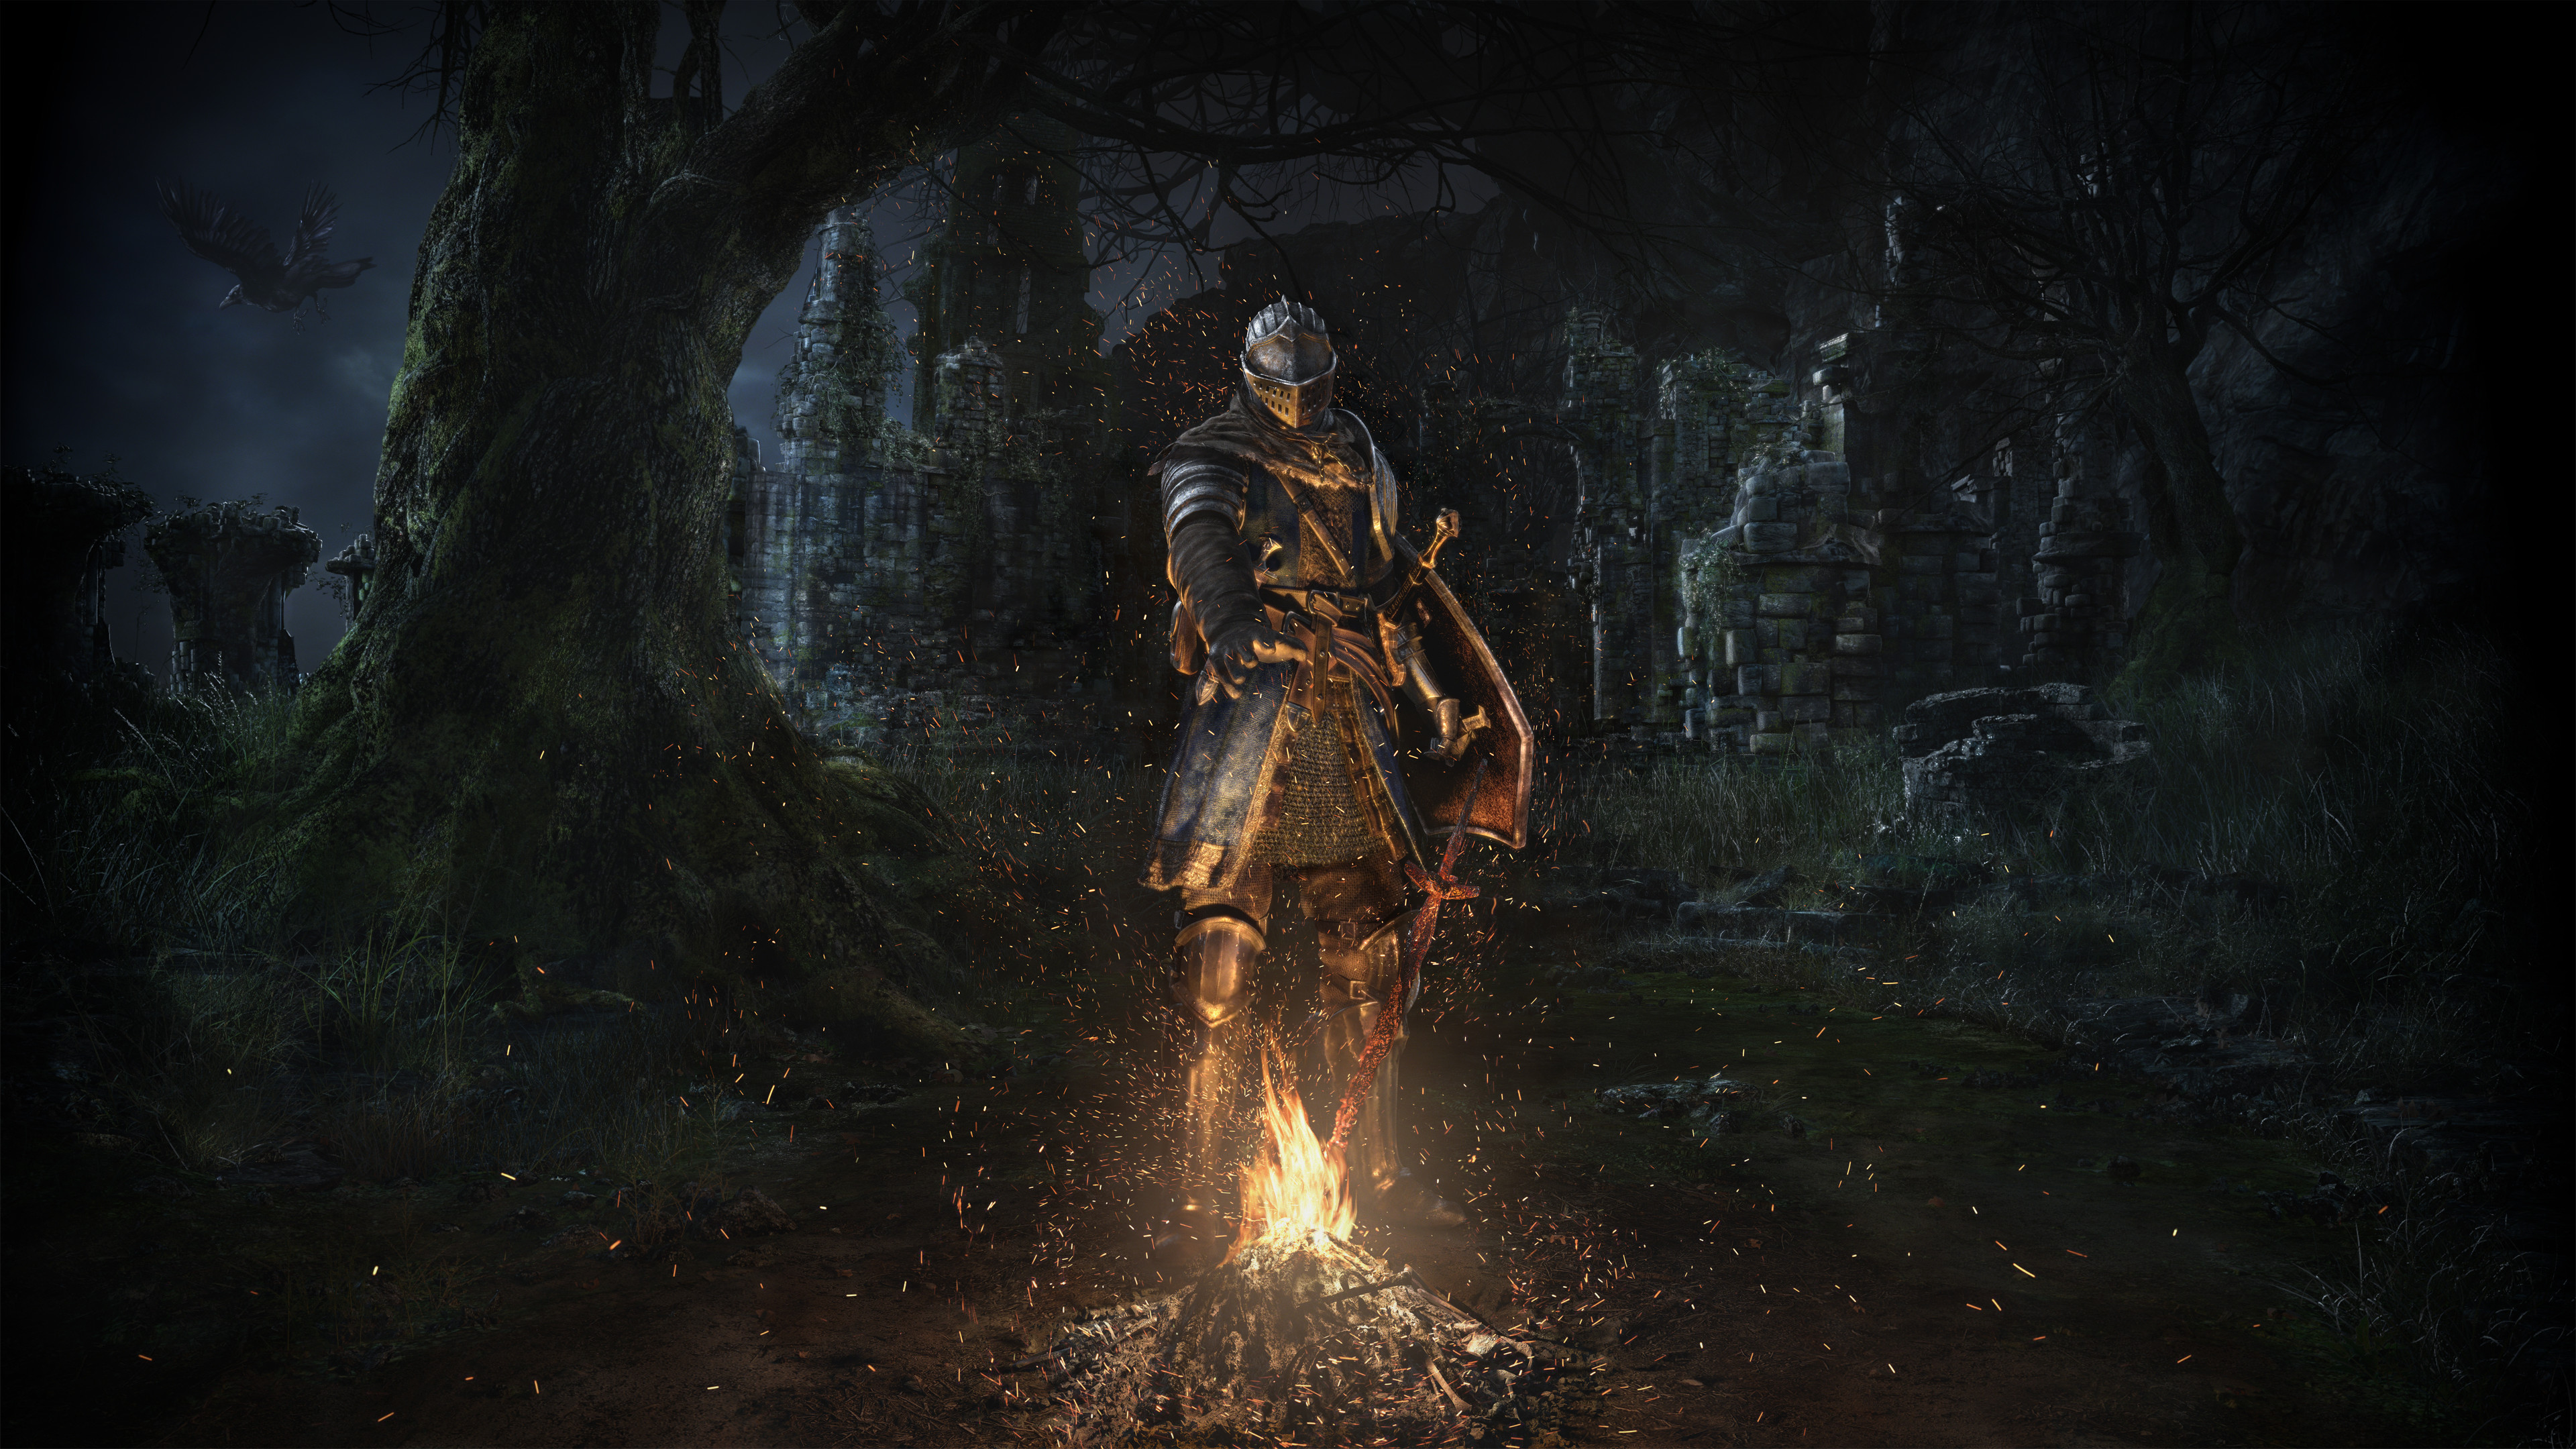 DARK SOULS REMASTERED key visual